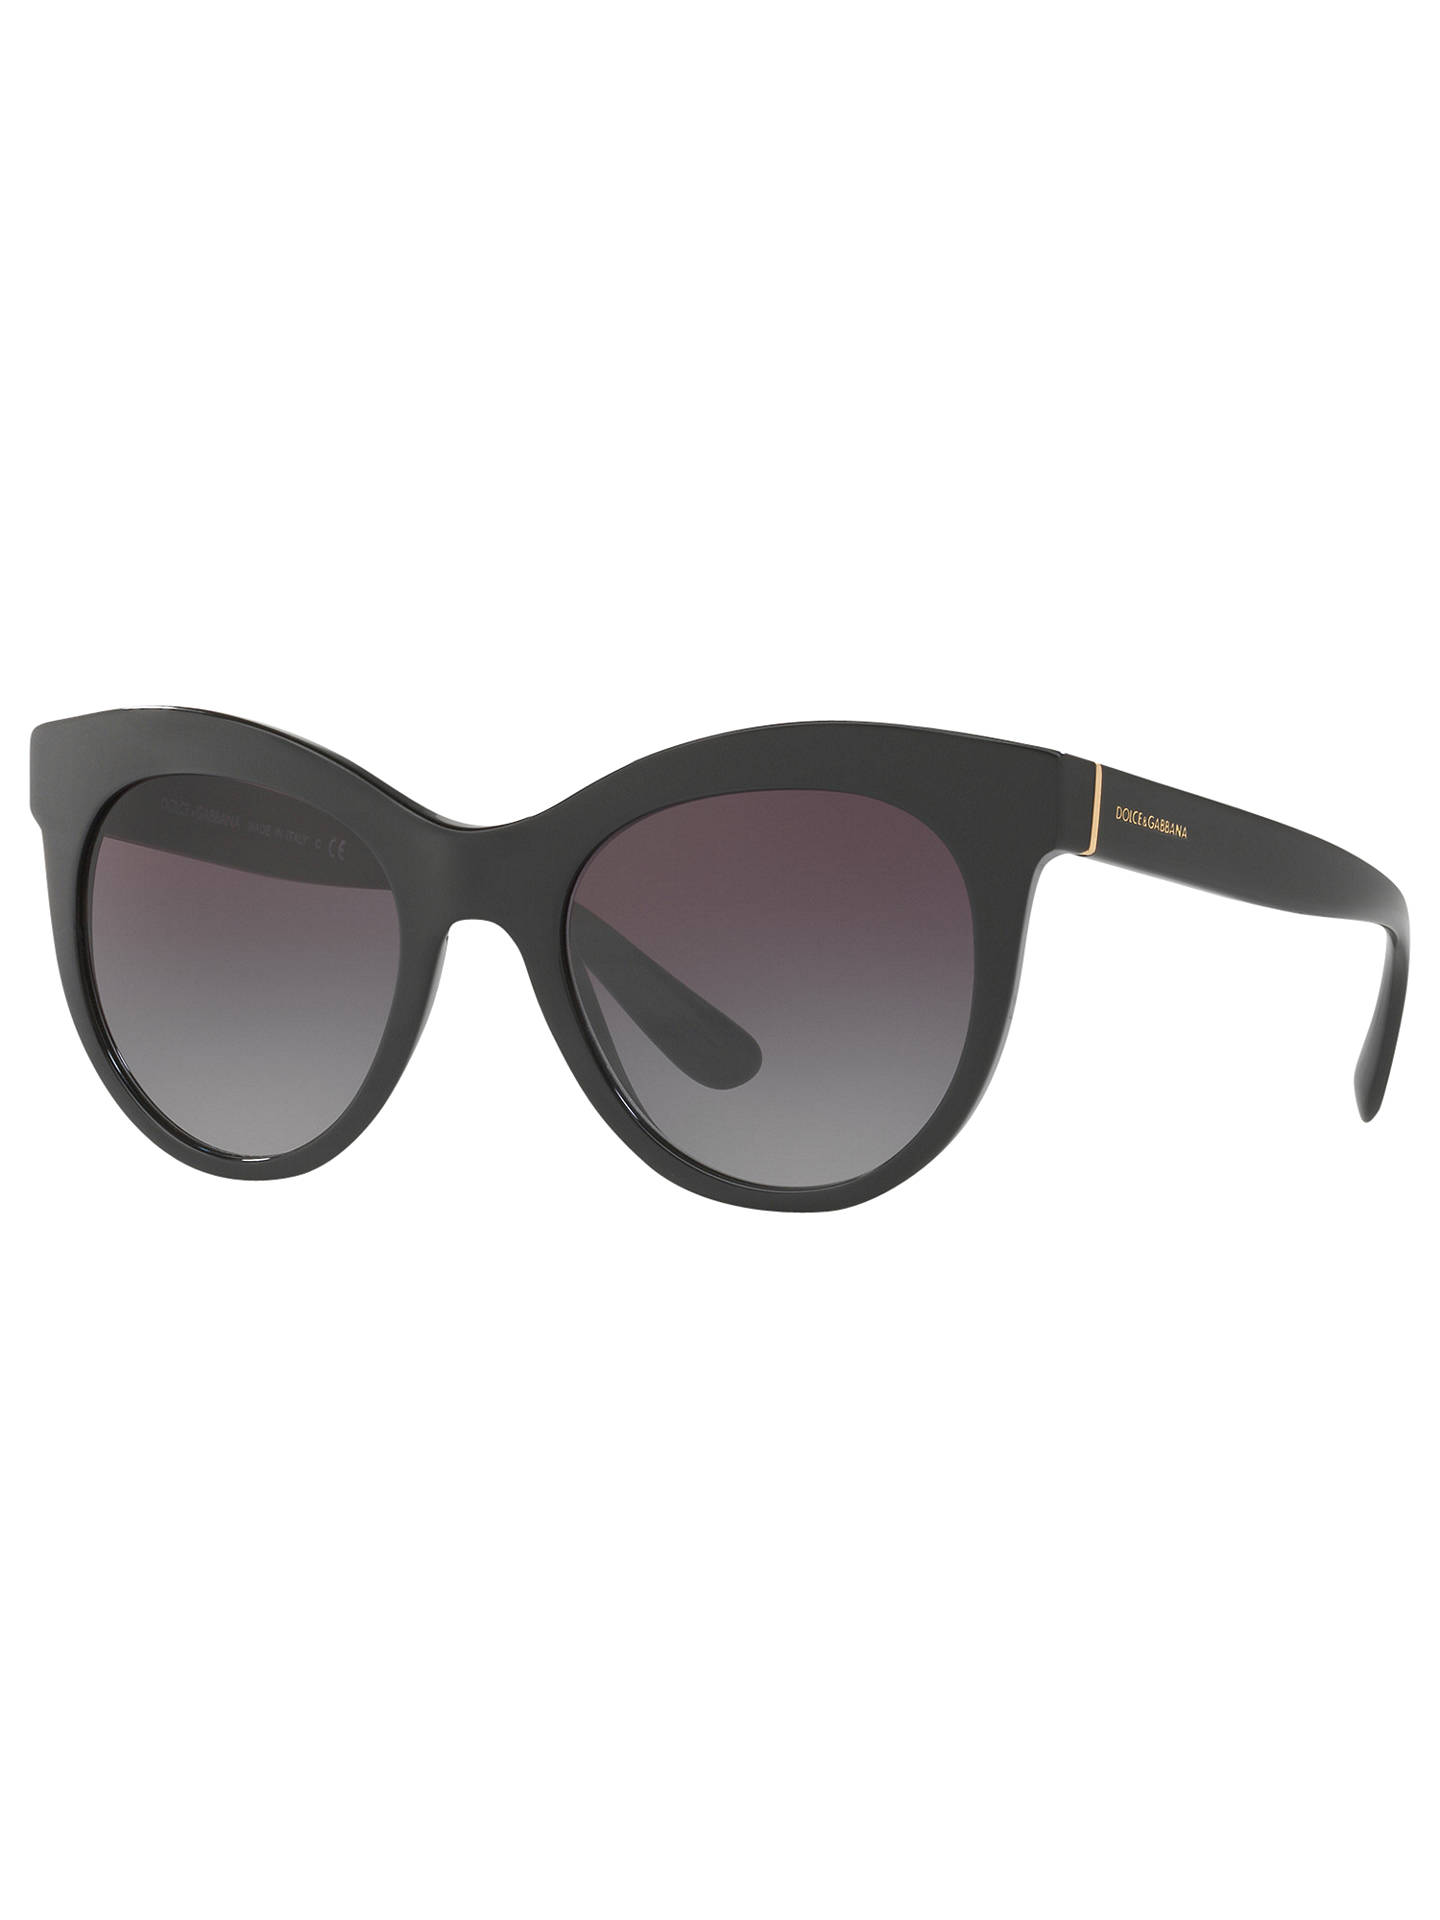 bfcf8fc1073e Buy Dolce & Gabbana DG4311 Oval Sunglasses, Matte Black/Purple Gradient  Online at johnlewis .